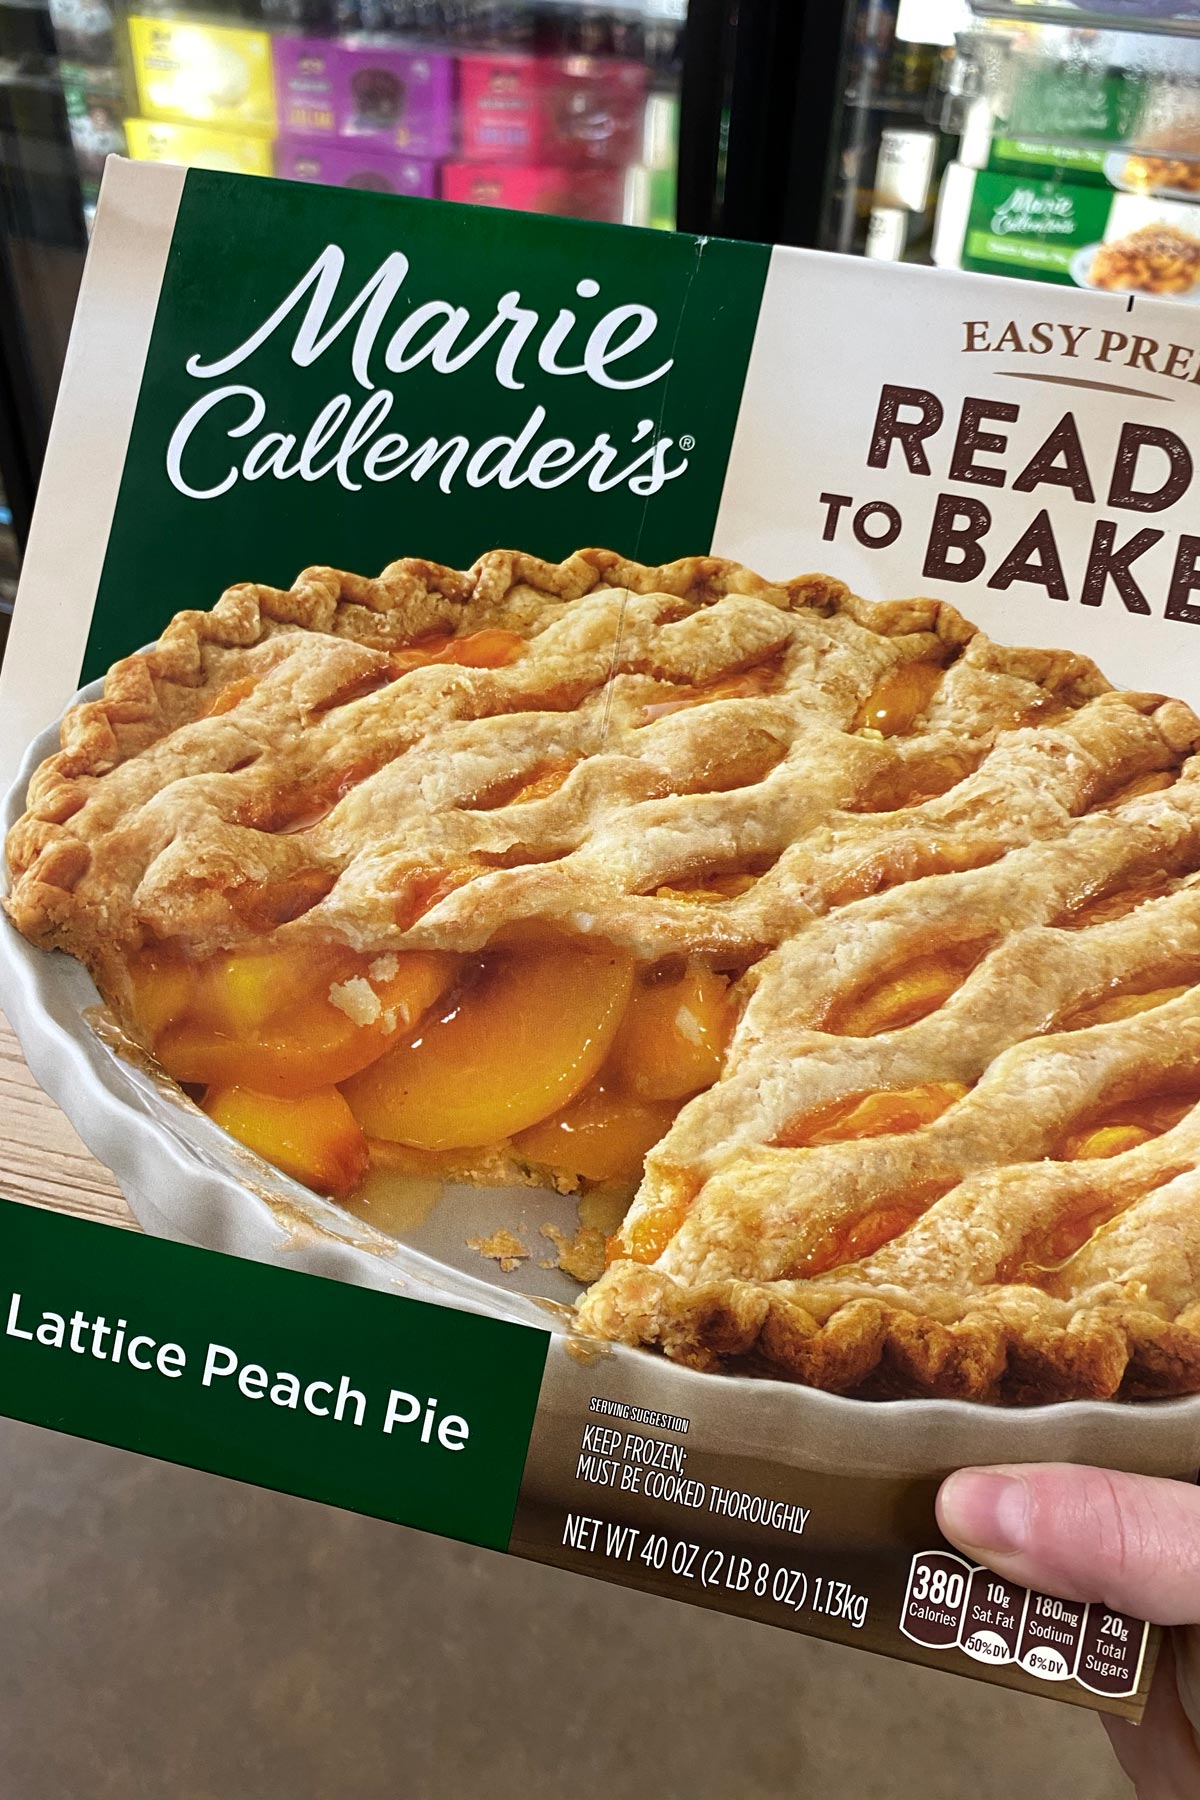 hand holding a package of Marie Callender's Lattice Peach Pie in the freezer aisle of a grocery store